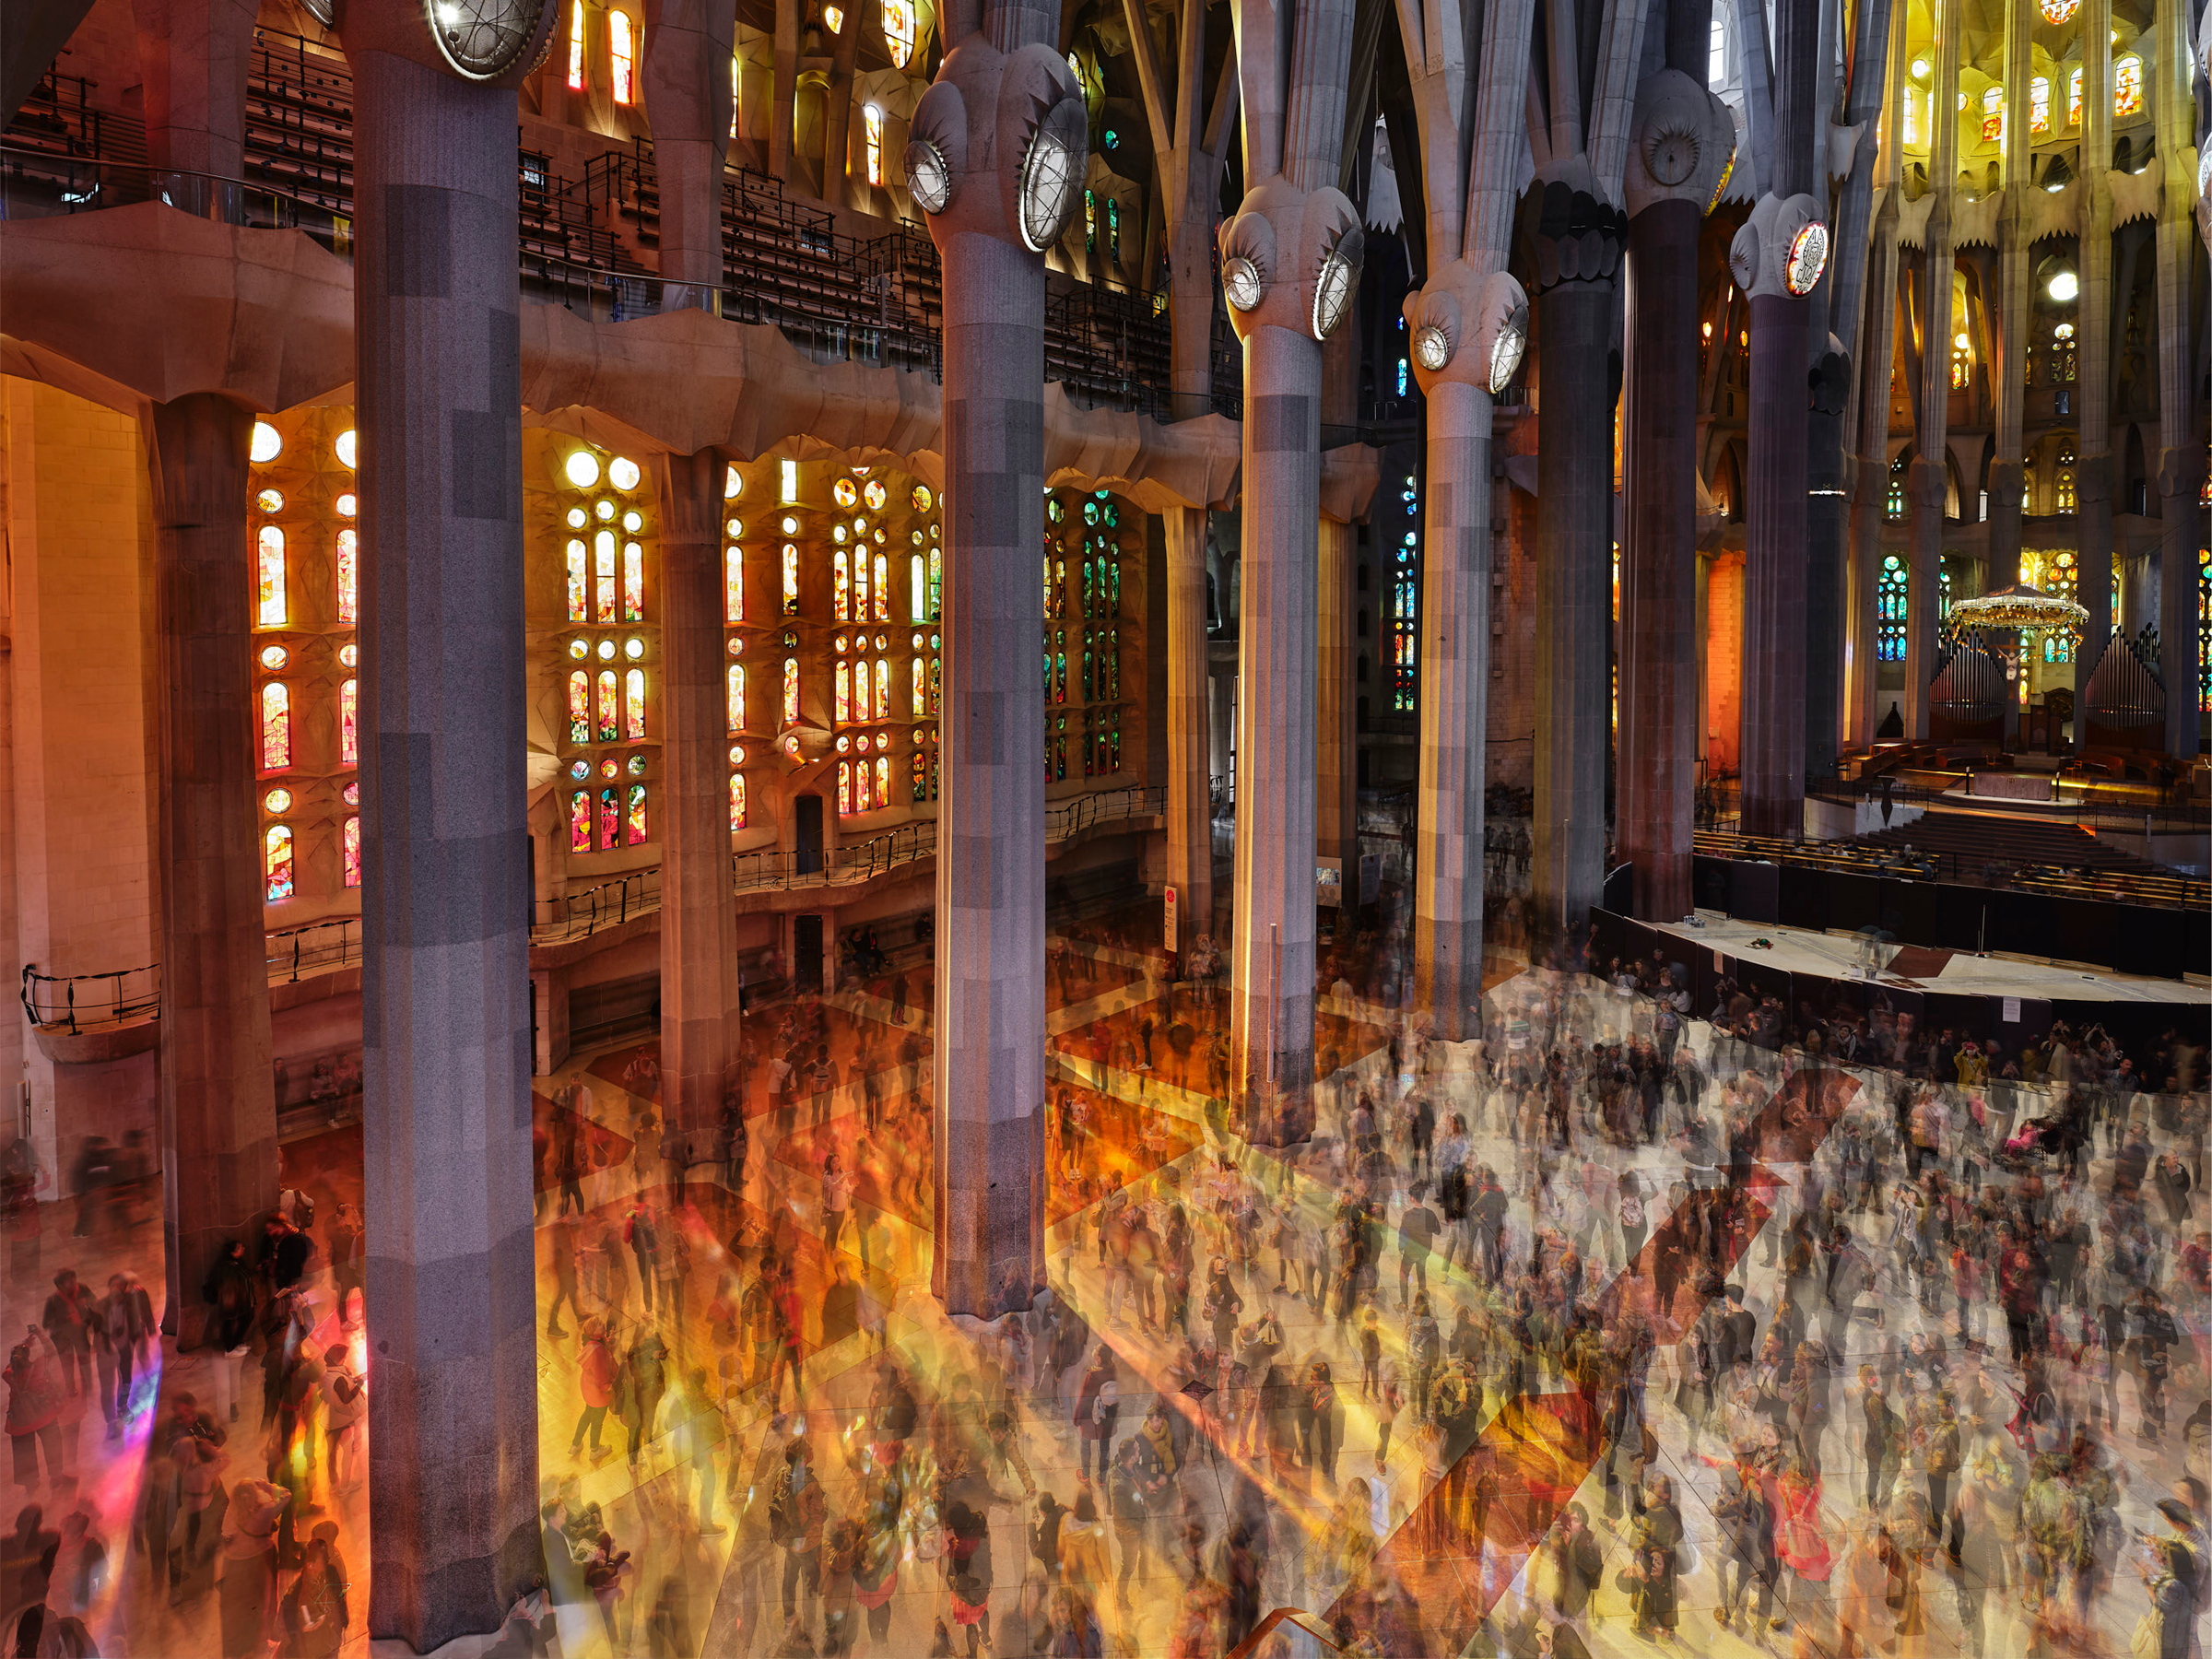 The entry fees of roughly 4 million visitors to the Sagrada Familia each year help provide the money needed to finish construction. On March 18, visitors walk through the nave. July 8 issue.